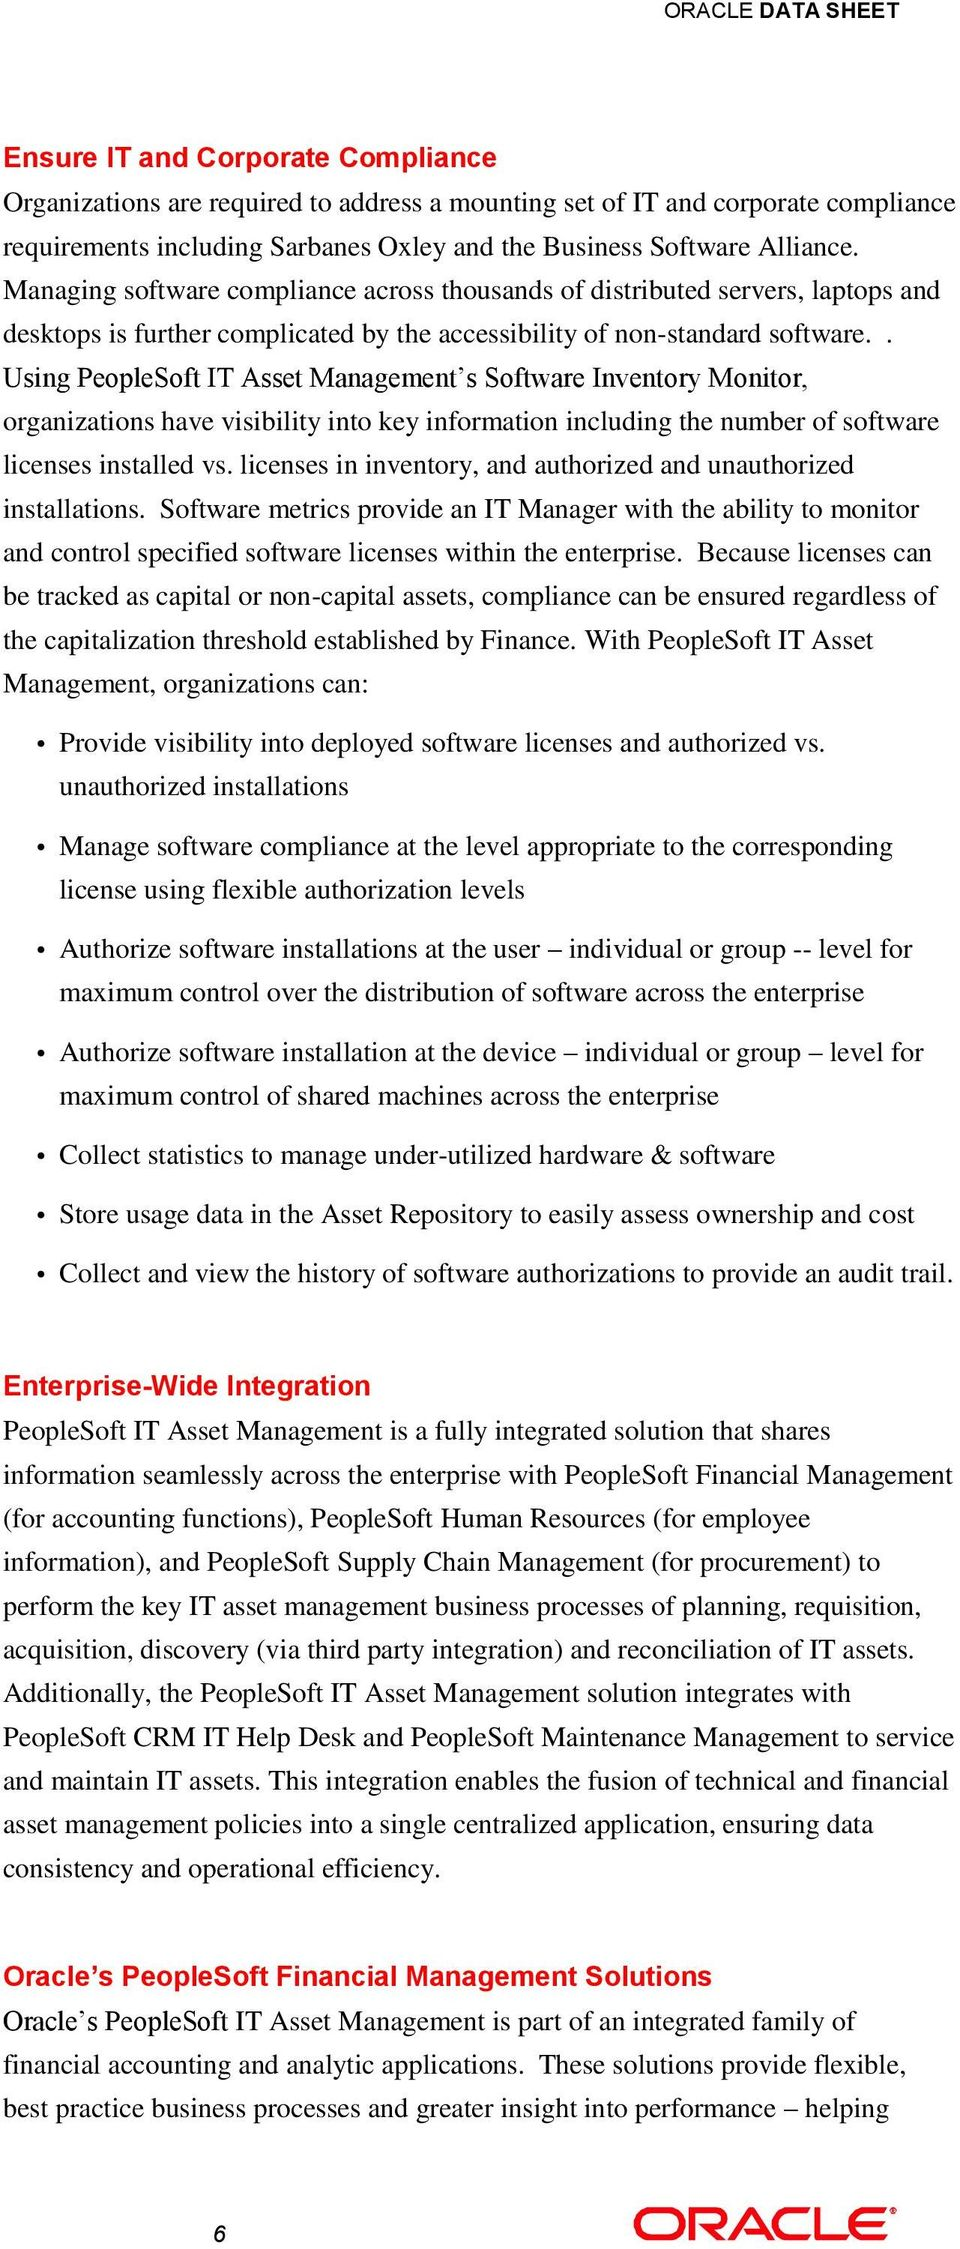 . Using PeopleSoft IT Asset Management s Software Inventory Monitor, organizations have visibility into key information including the number of software licenses installed vs.